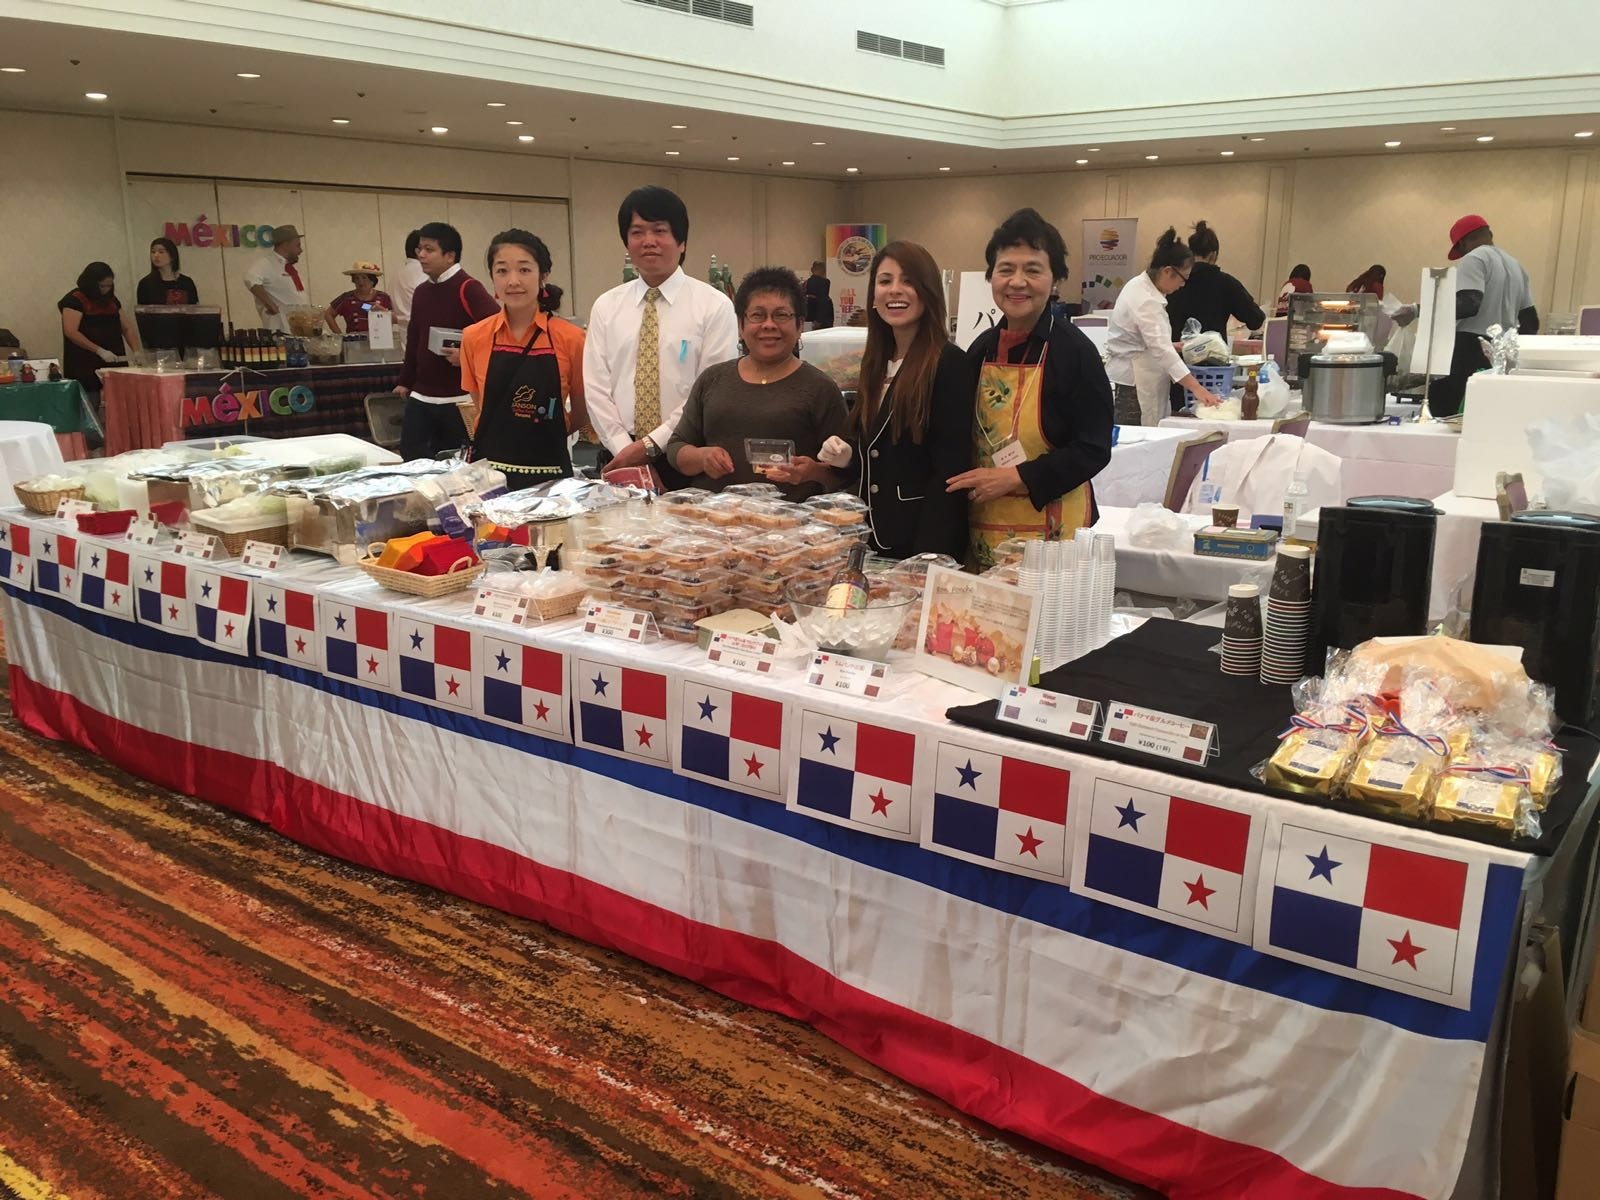 The food table with the Embassy staffs